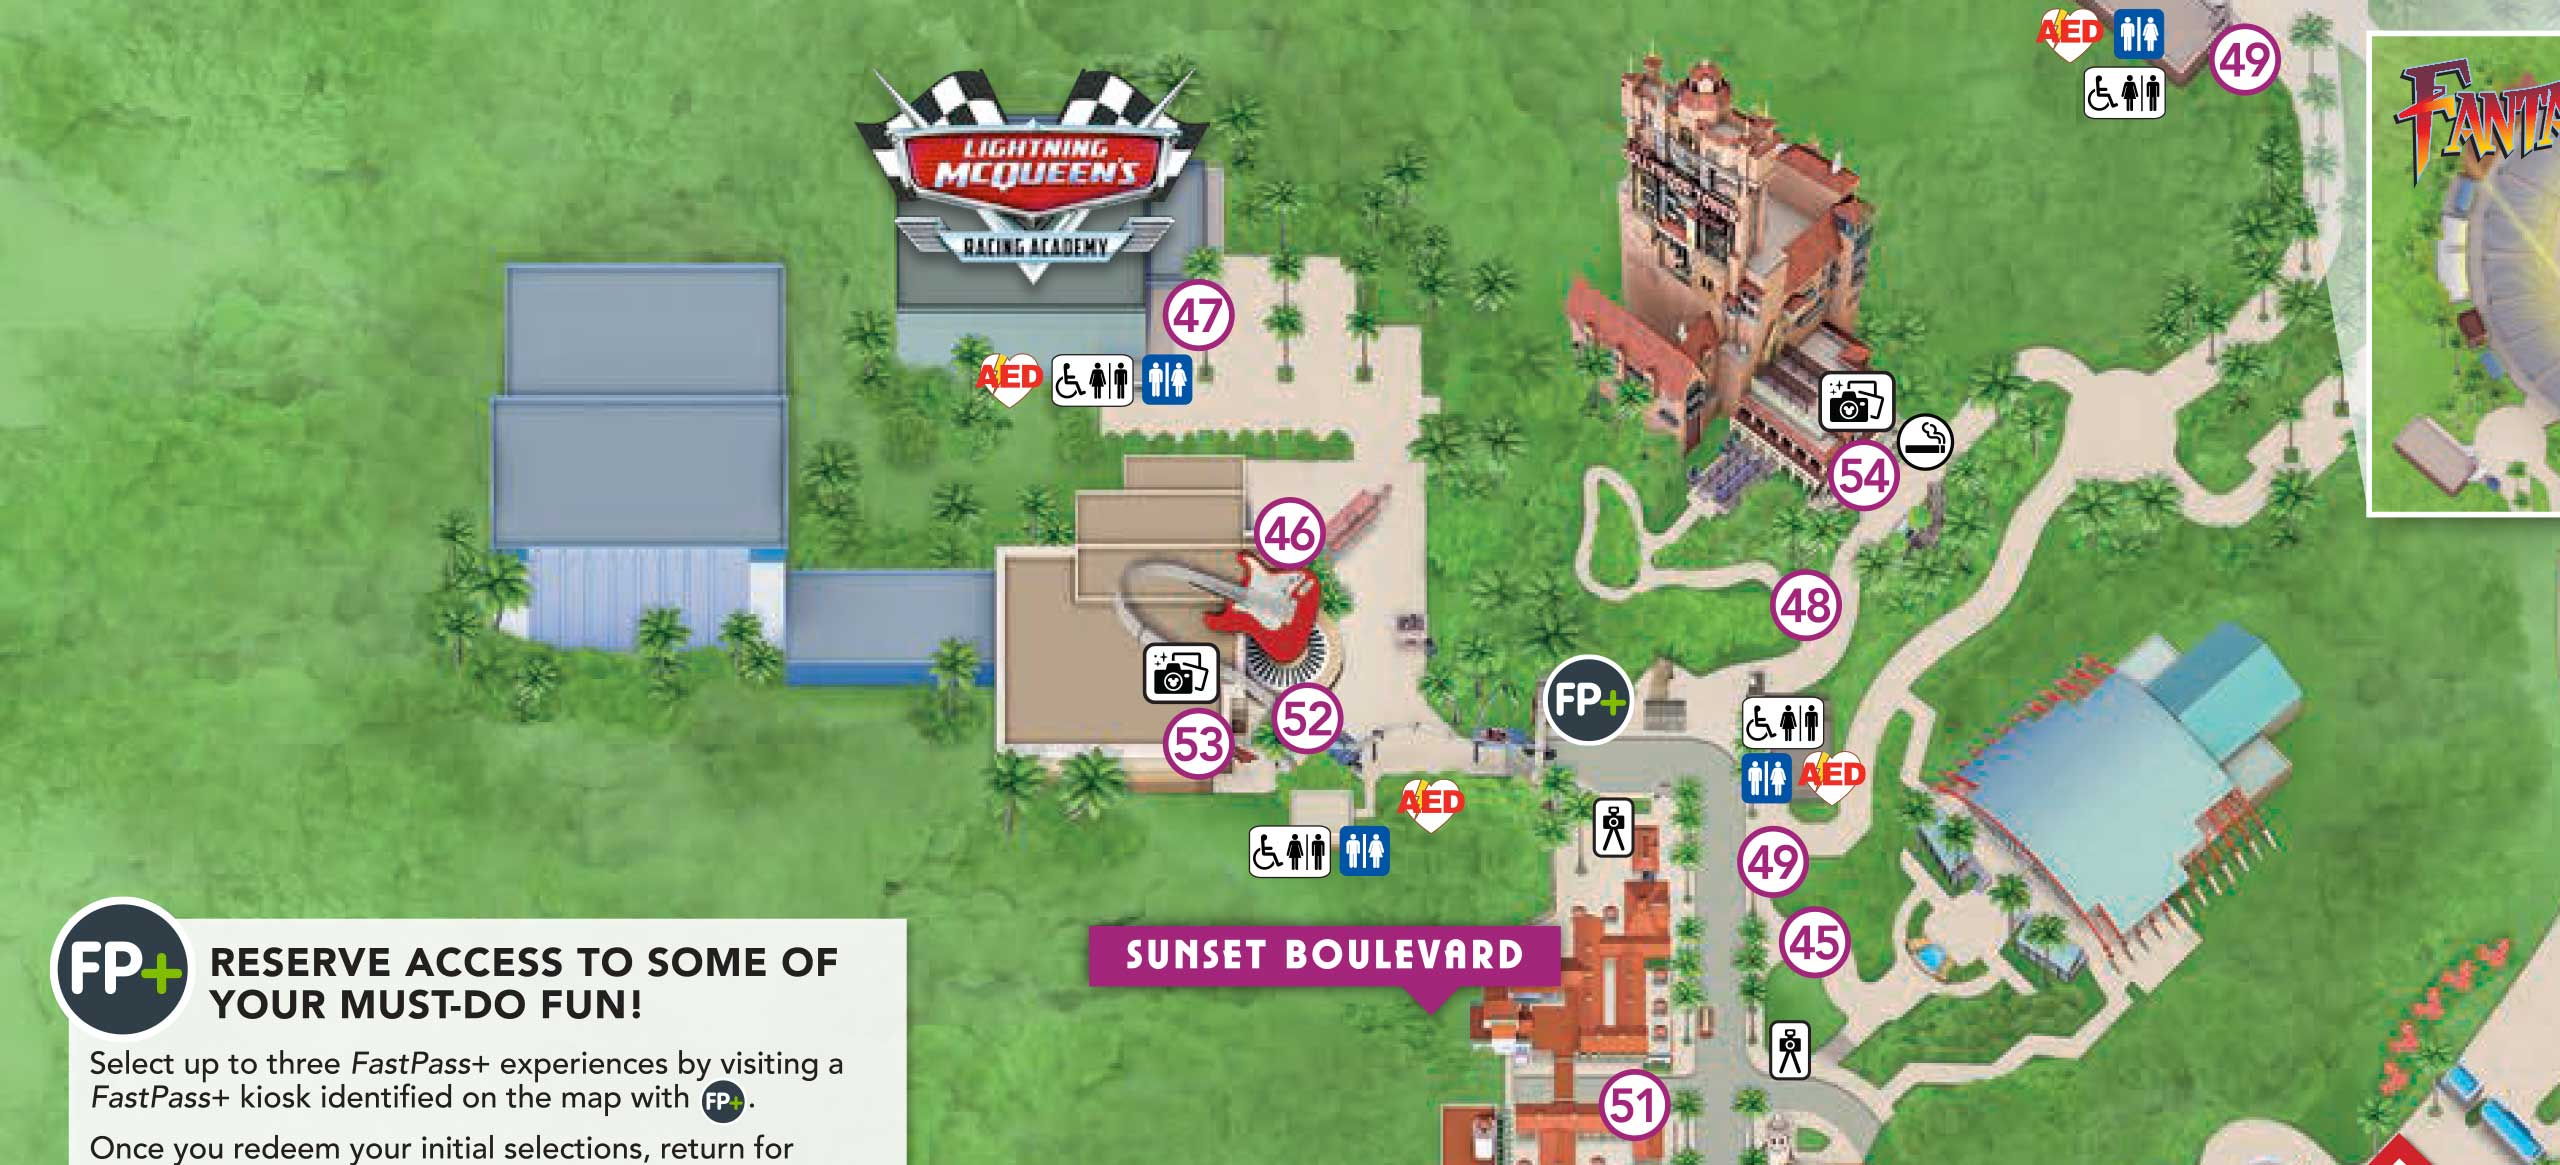 Lightning McQueen's Racing Academy shown on the new guide map